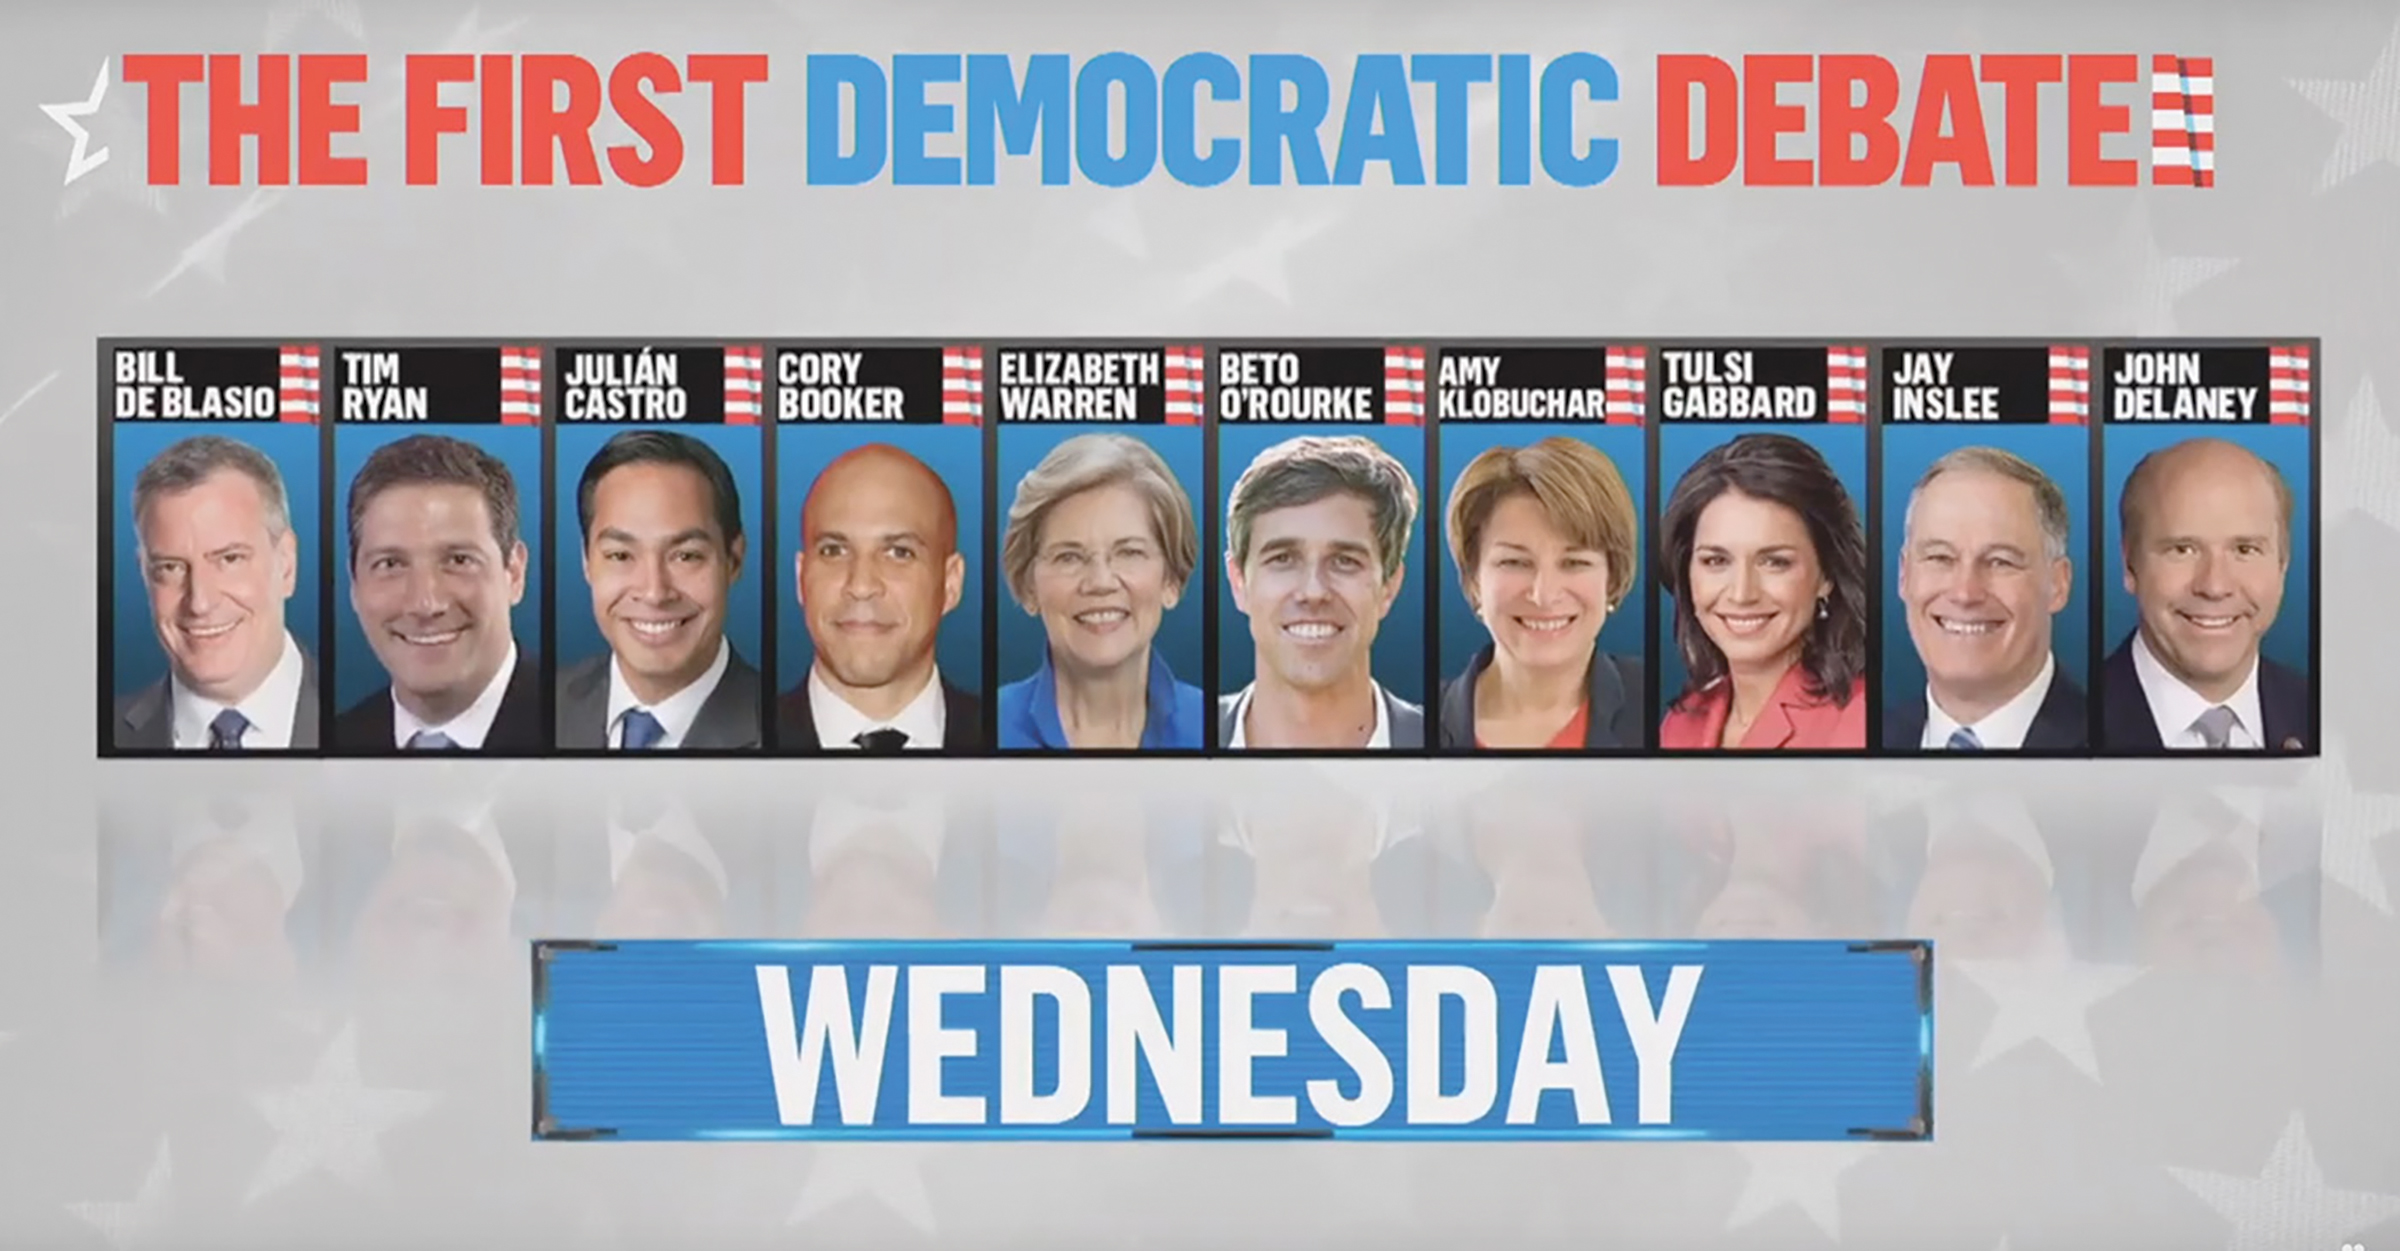 The second of the first two debates of the 2020 campaign will be June 27 in Miami. A second African American candidate, Sen. Kamala Harris of California, will be featured.